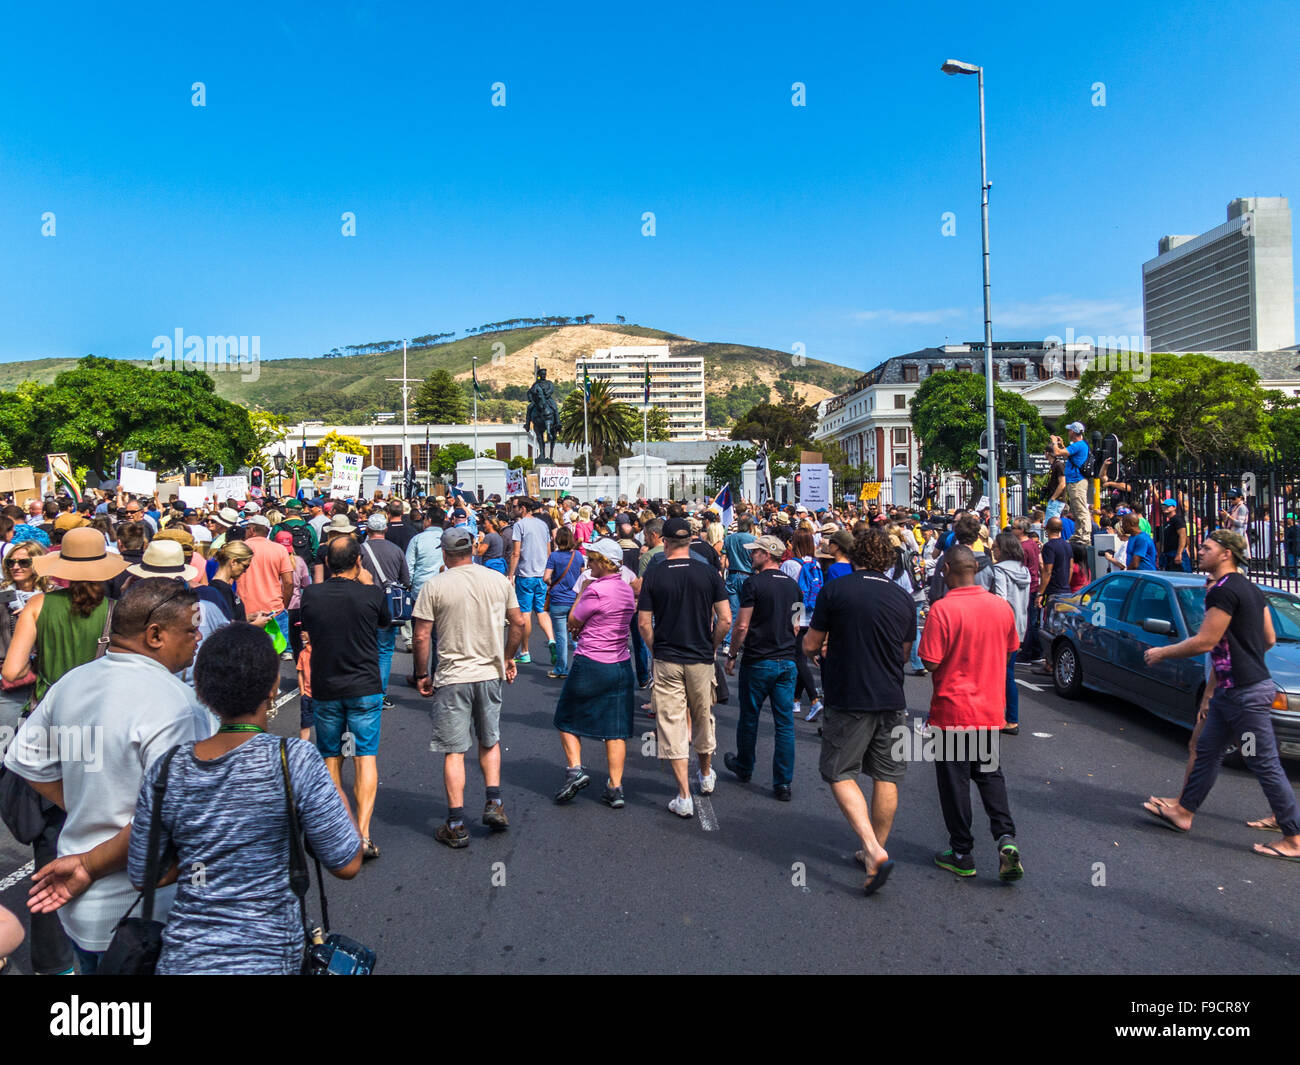 Cape Town, South Africa. 16th December, 2015. Crowd of people outside the Houses of Parliament in Cape Town, South - Stock Image